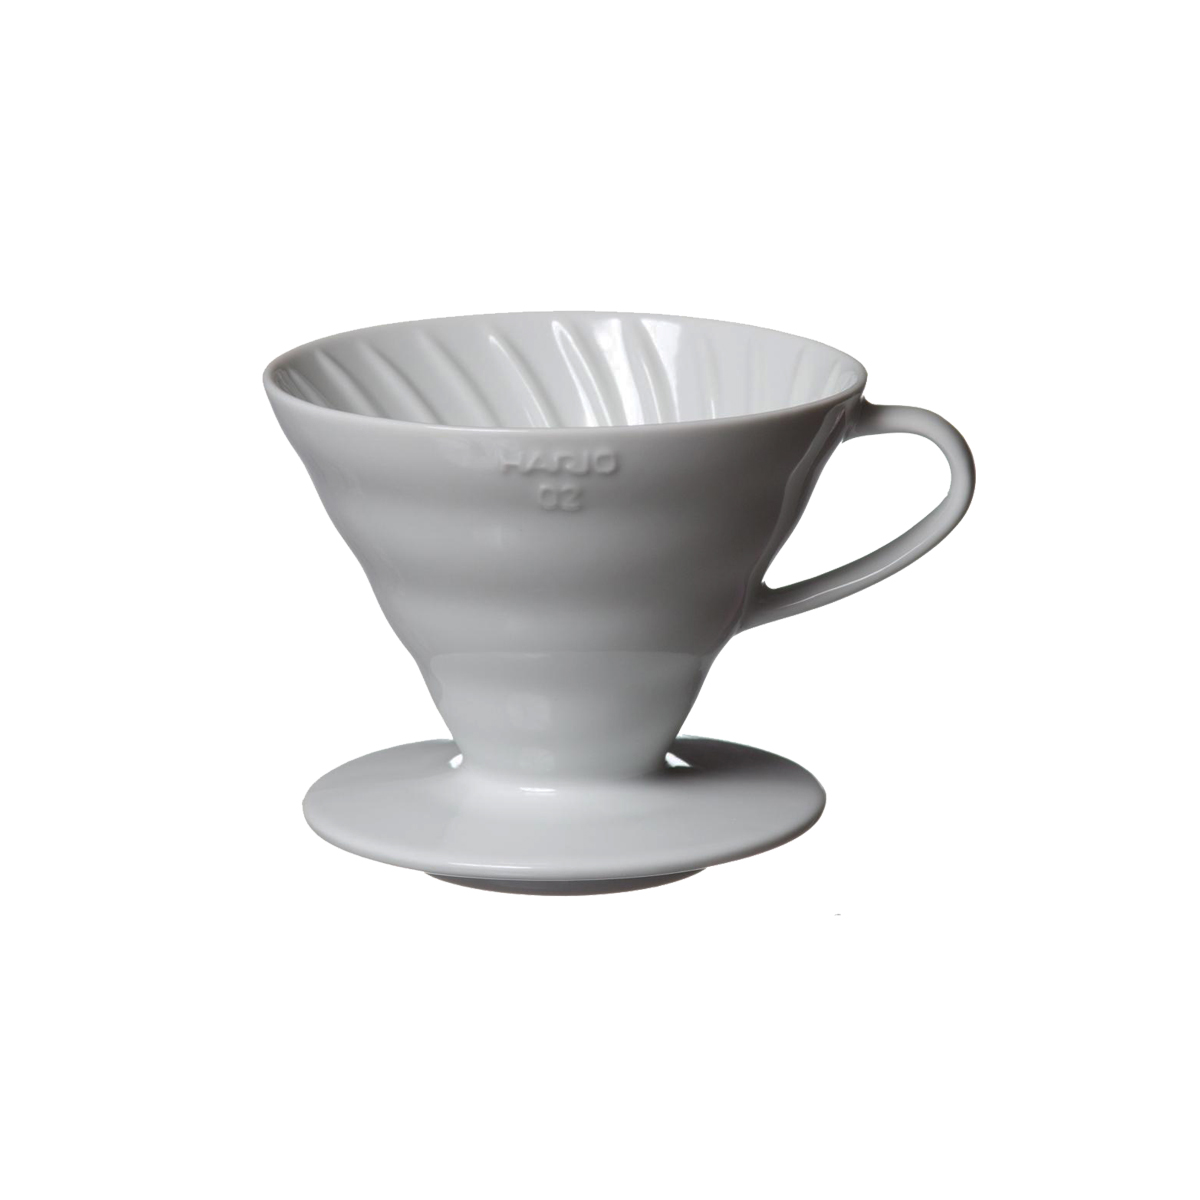 Hario V60 Ceramic Coffee Dripper White 02 VDC-02W